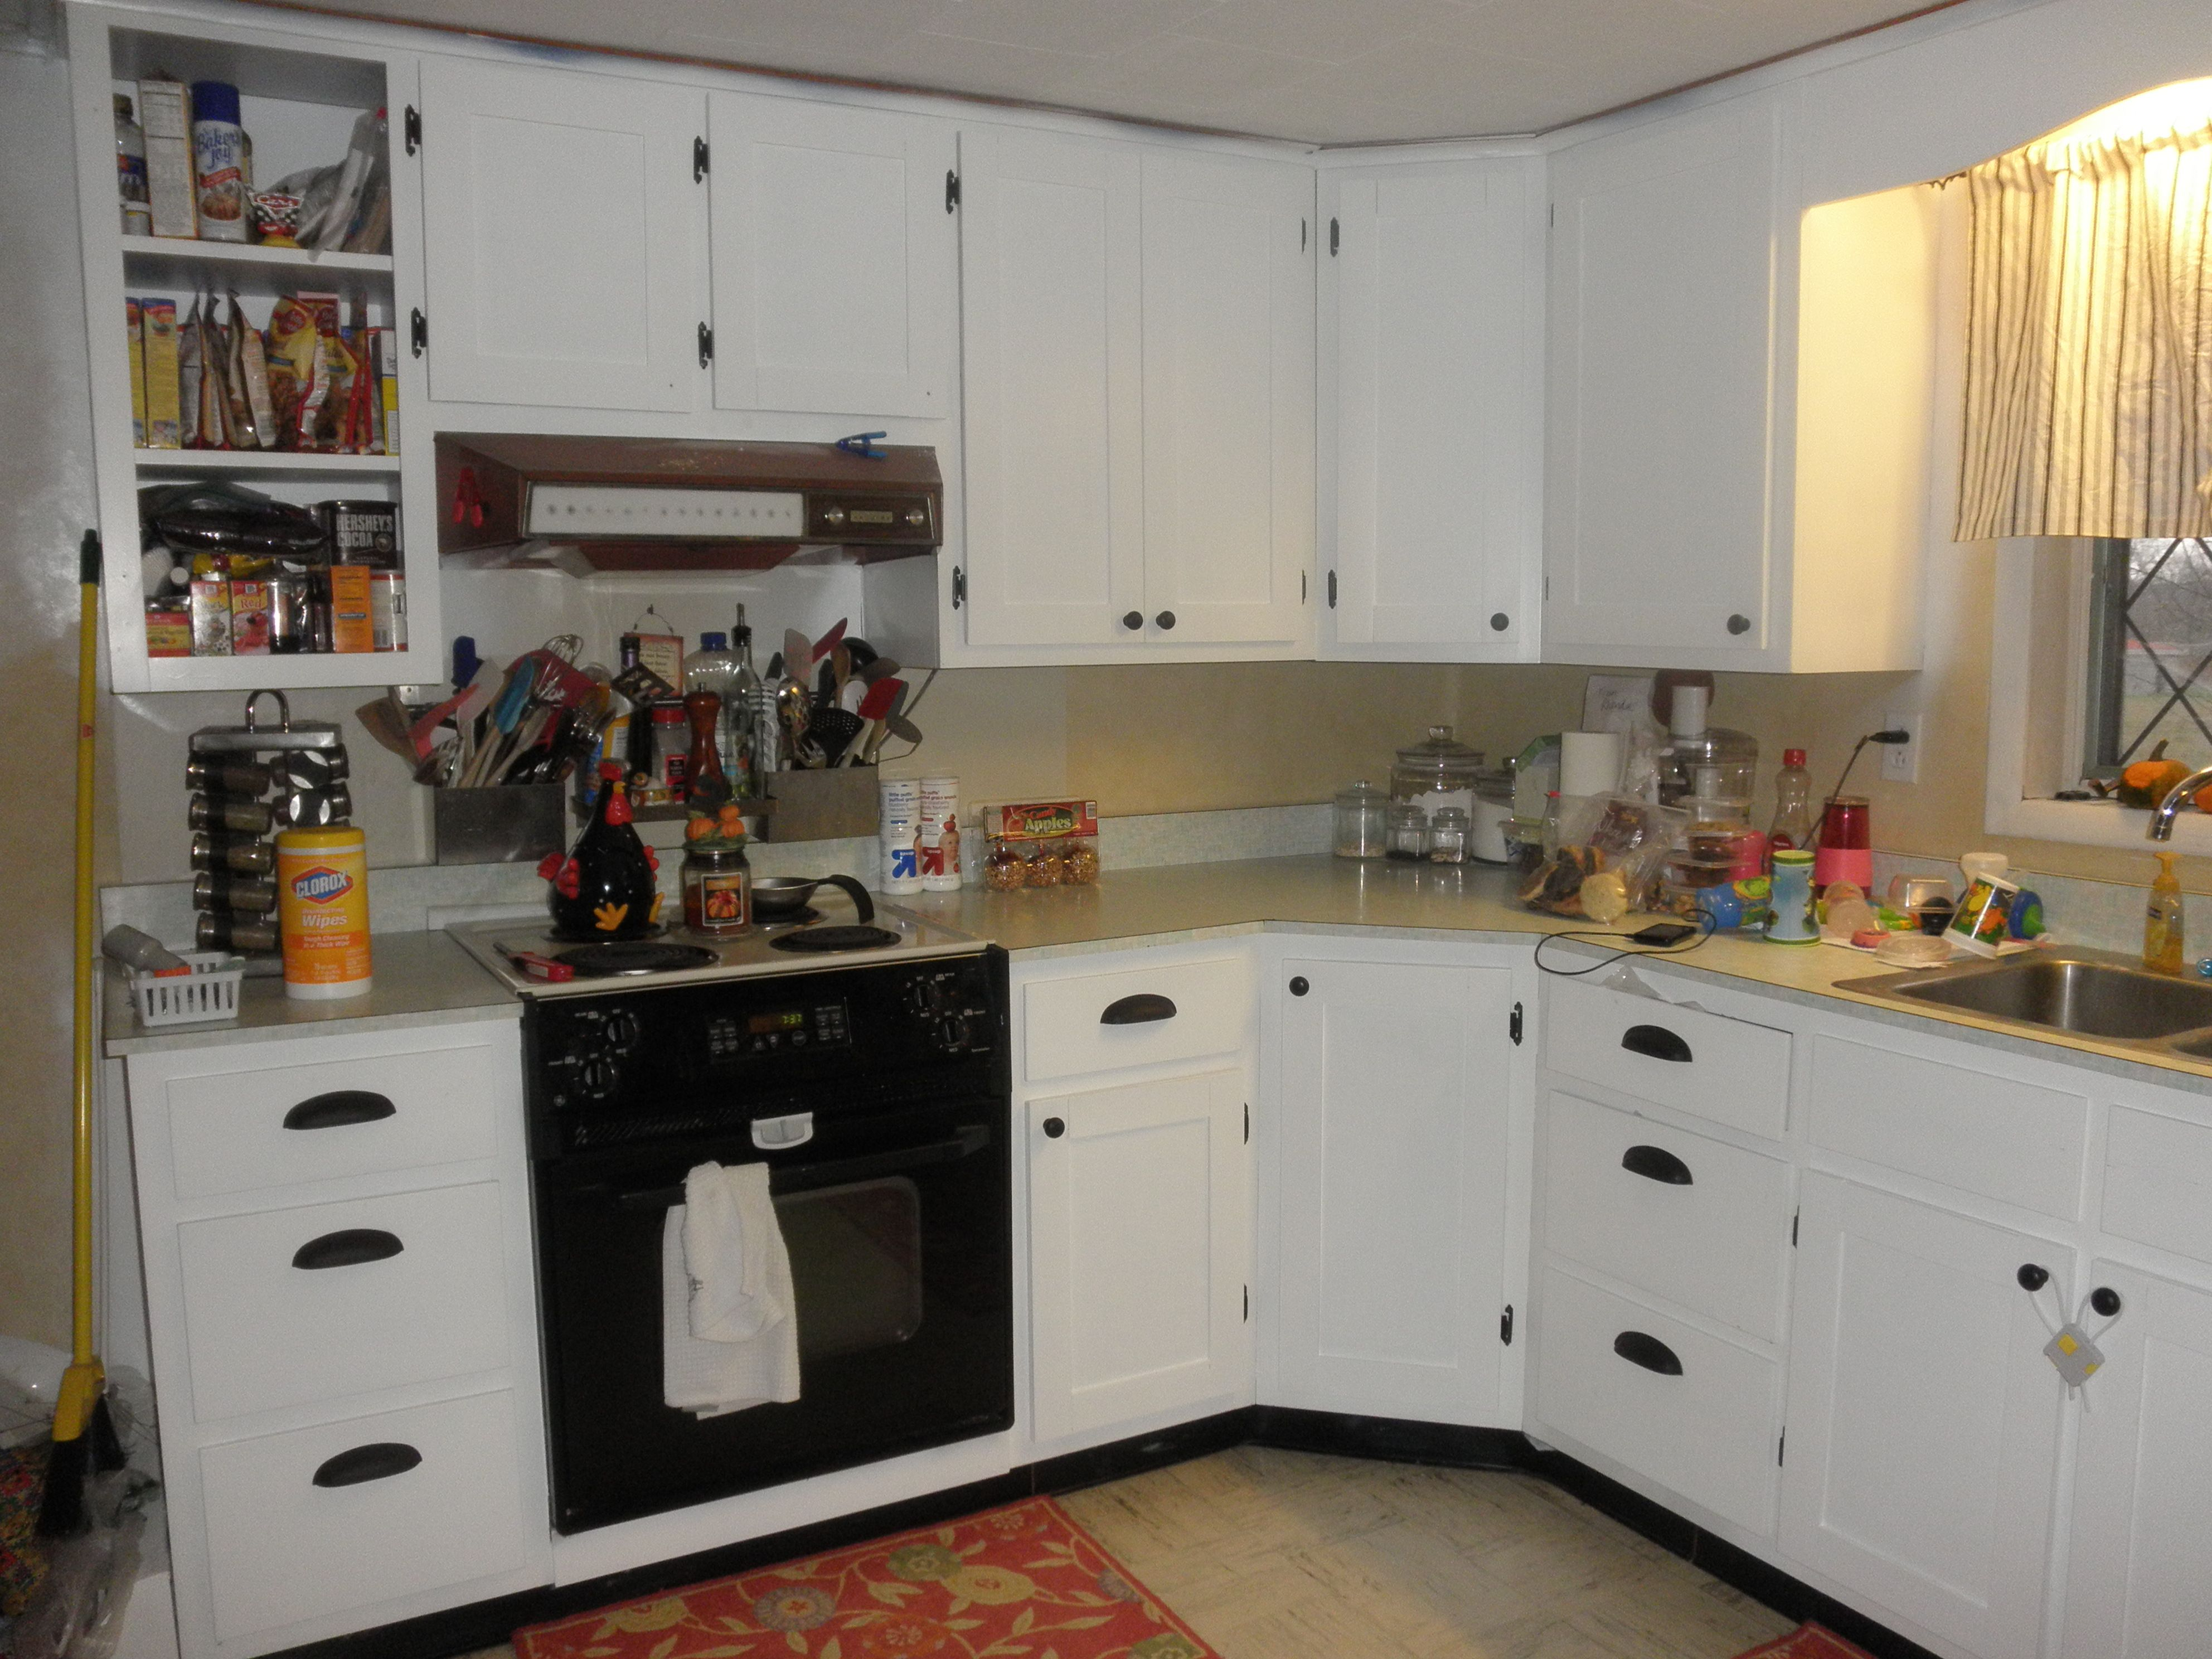 Superb img of cabinet refinishing almost complete!! They used to be natural wood  with #9E652D color and 3968x2976 pixels